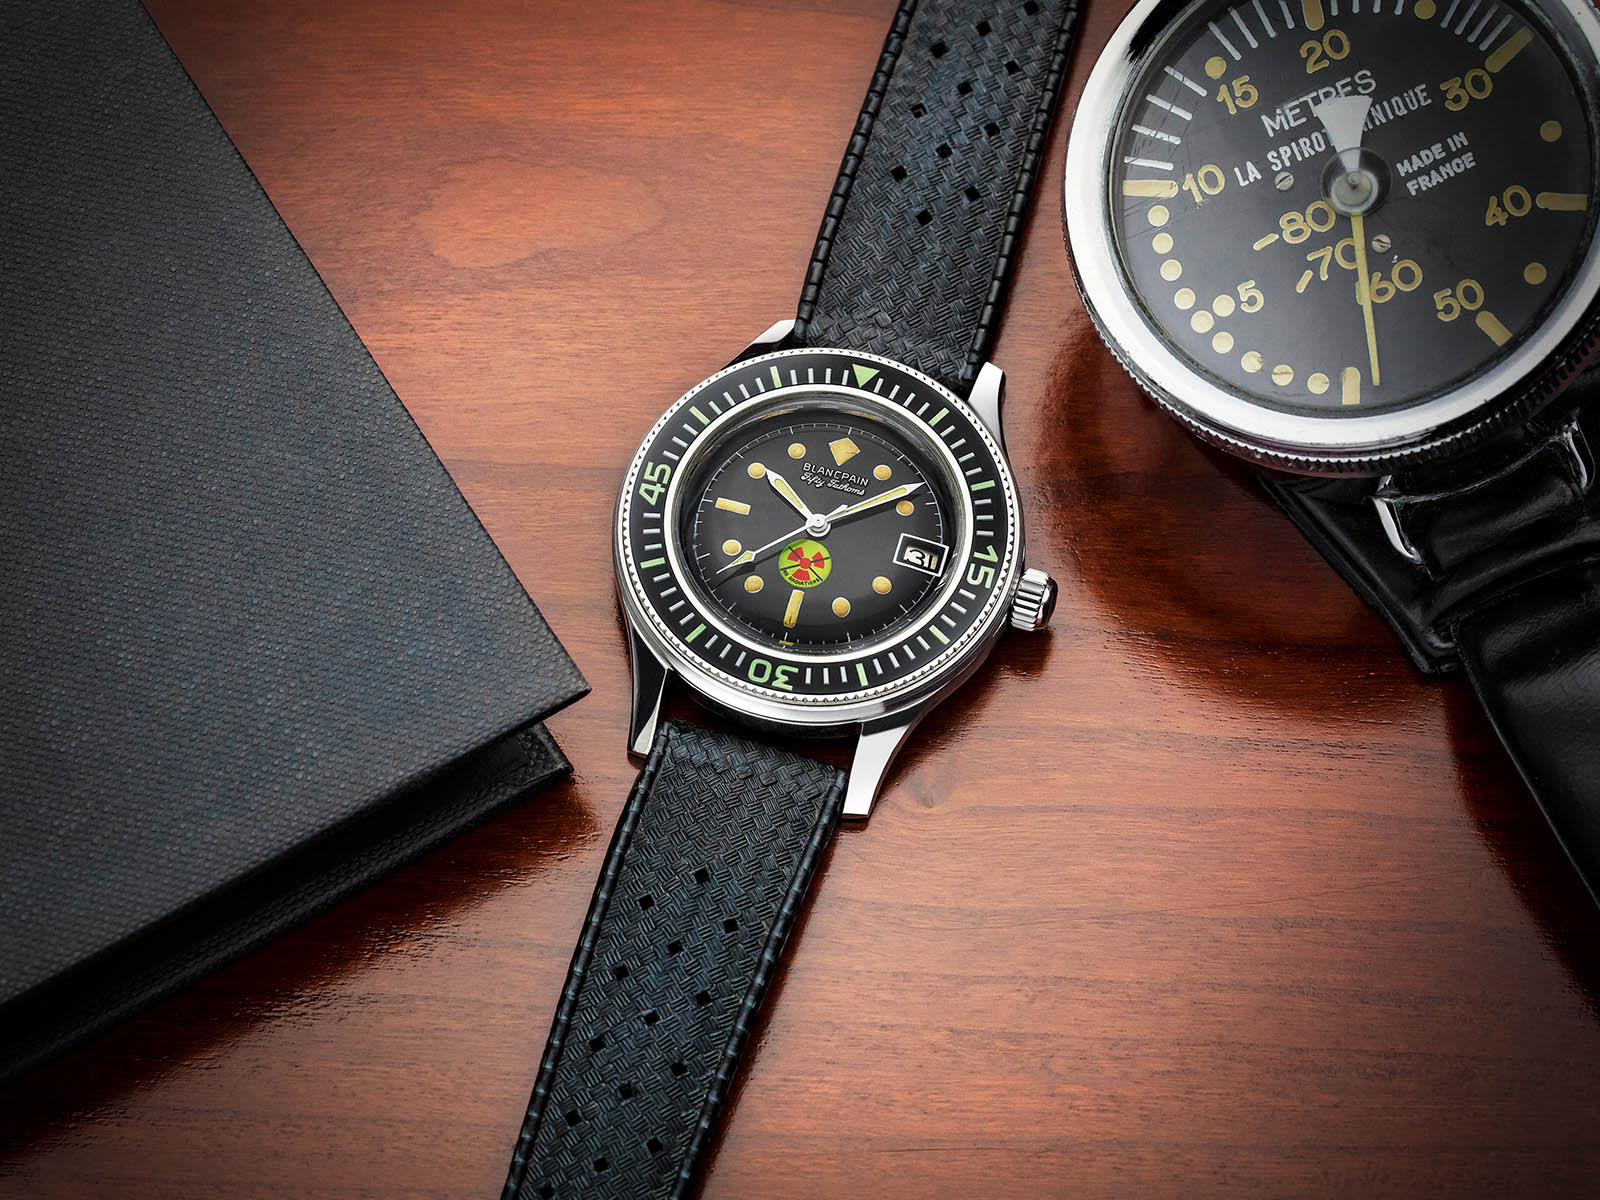 5008d-1130-b64a-blancpain-tribute-to-fifty-fathoms-no-rad-limited-edition-5.jpg